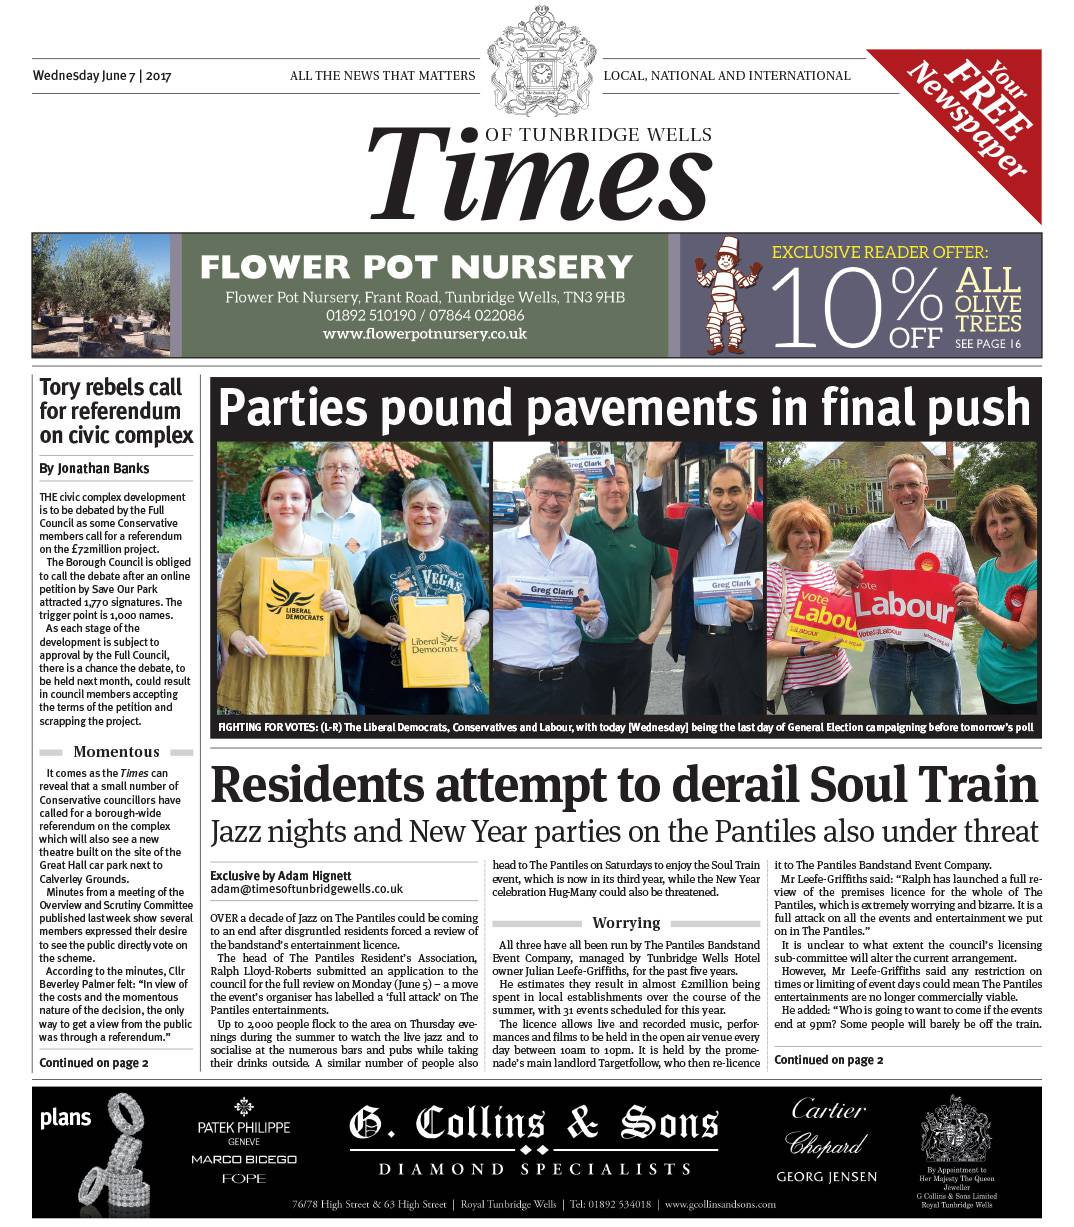 Read the Times of Tunbridge Wells 7th June 2017